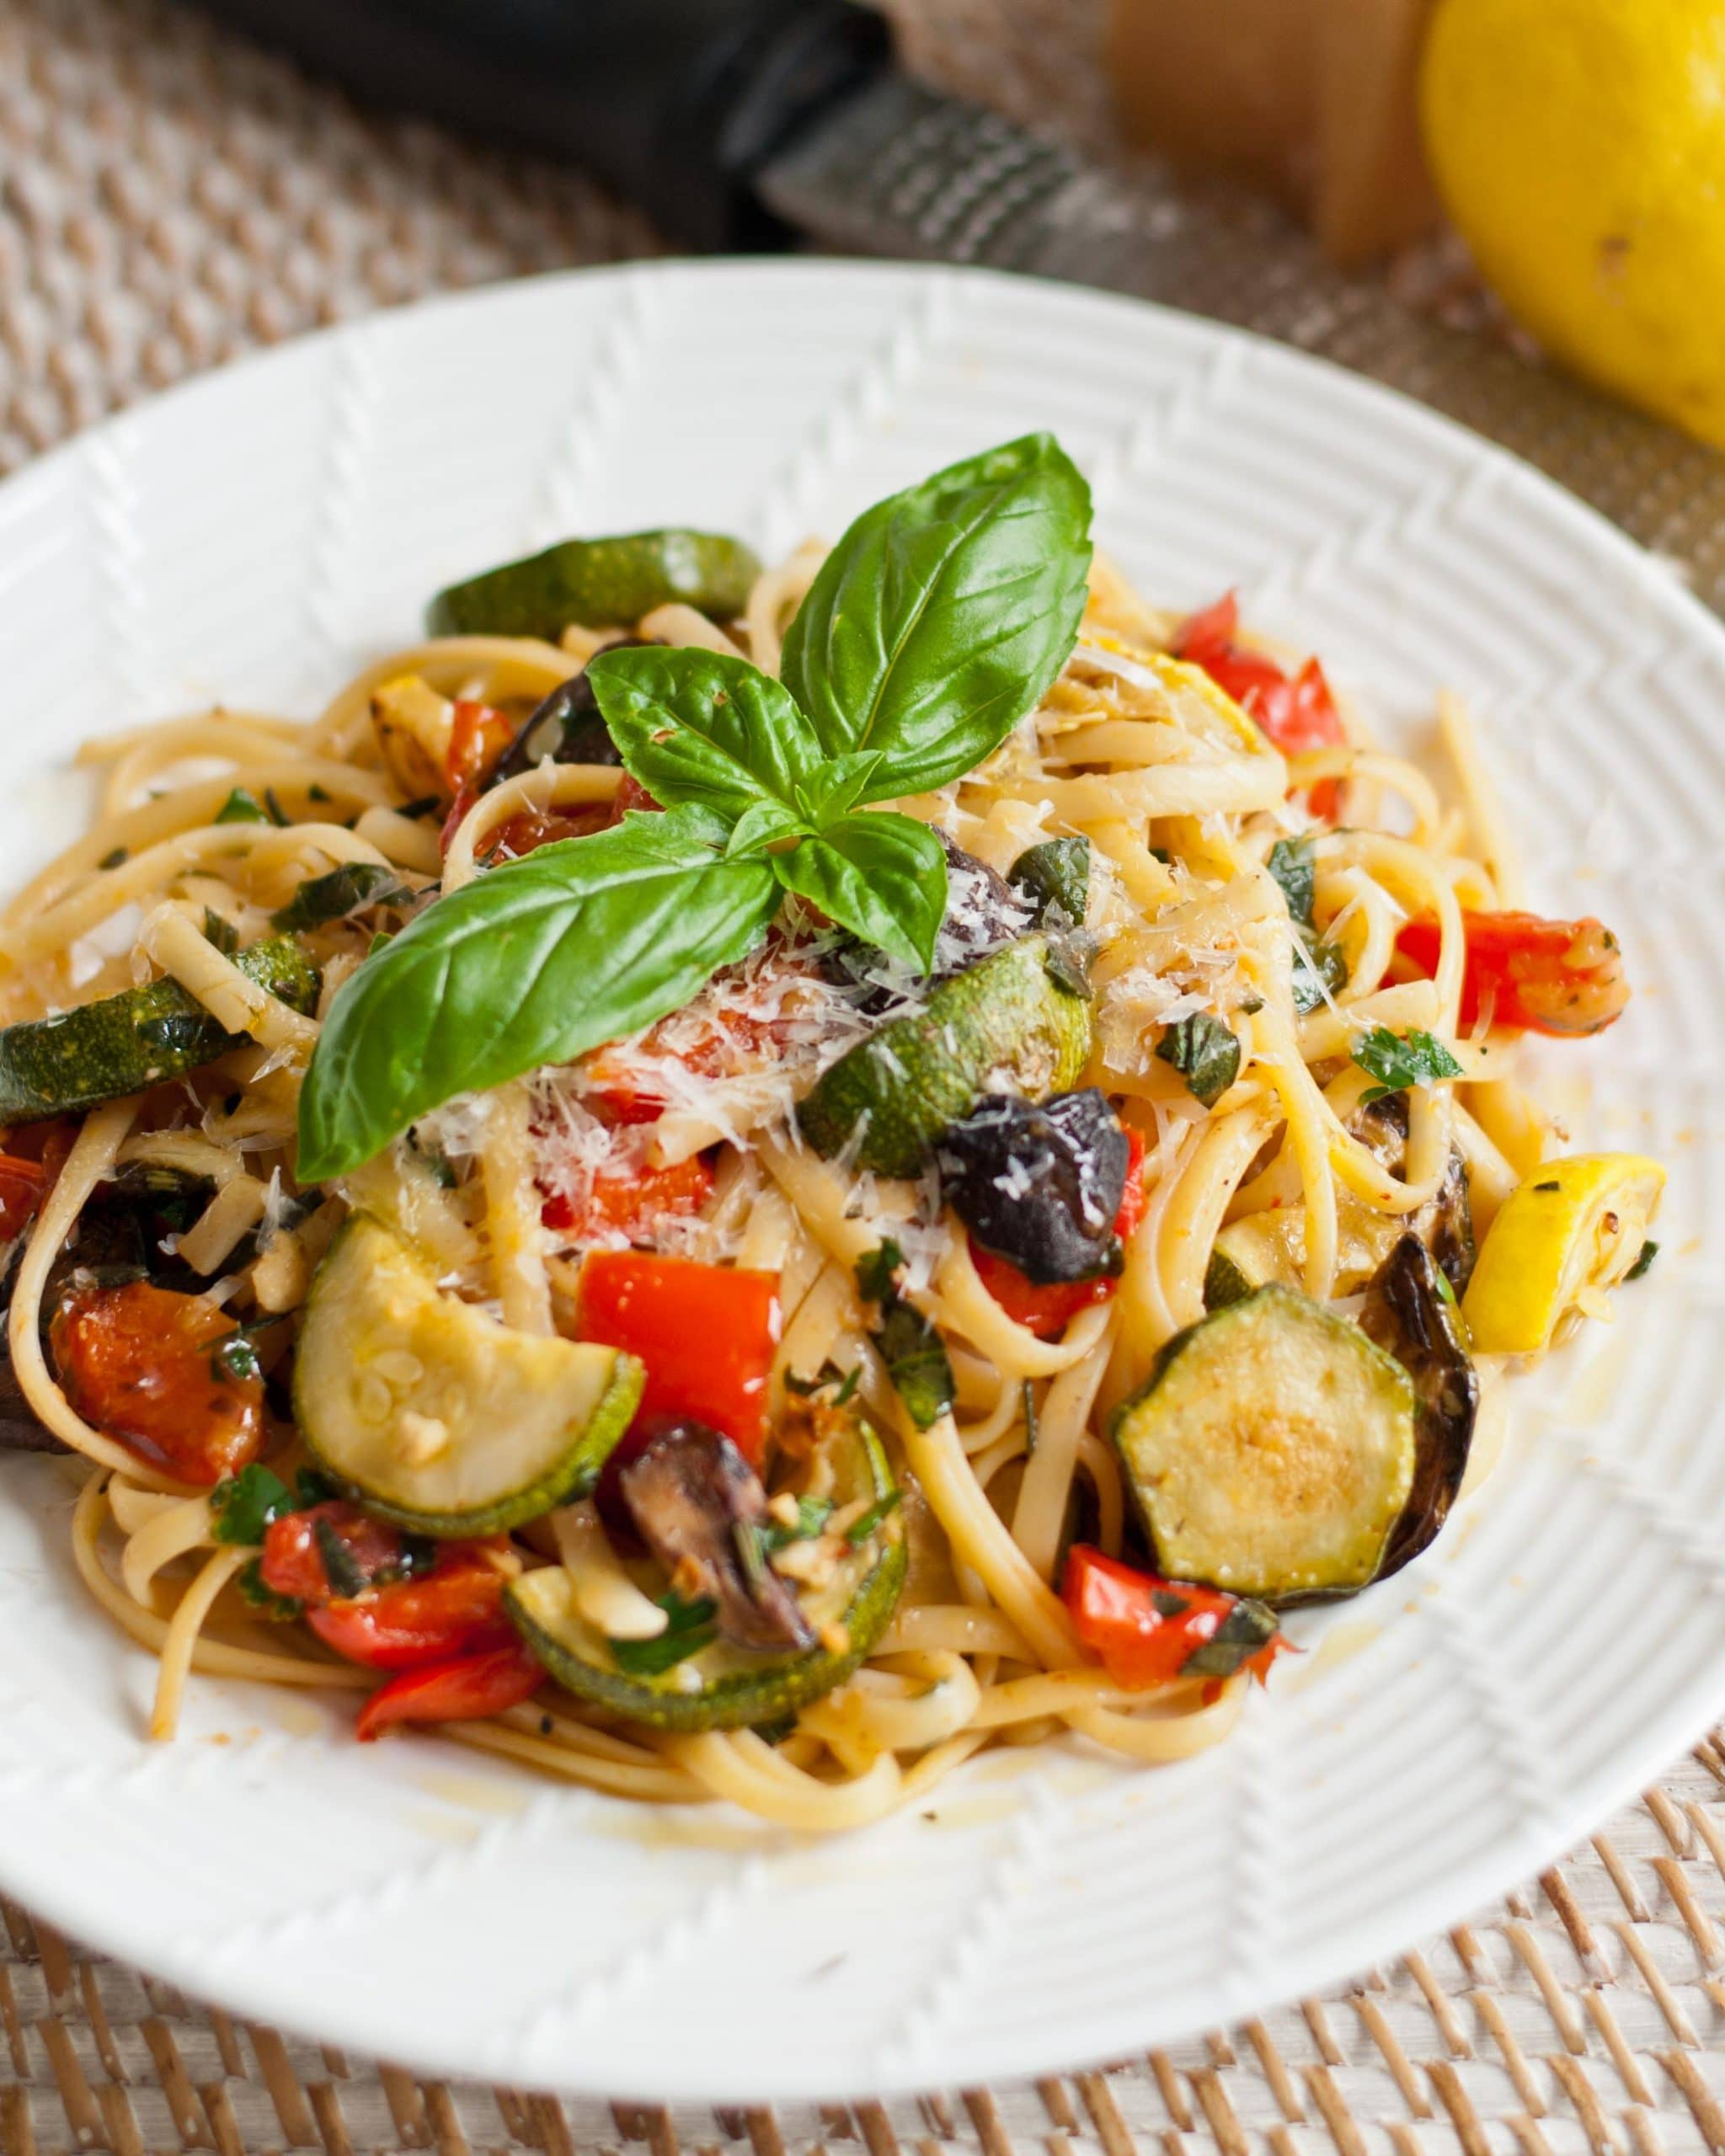 Lemony Summer Linguine with Grilled Vegetables | Neighborfoodblog.com